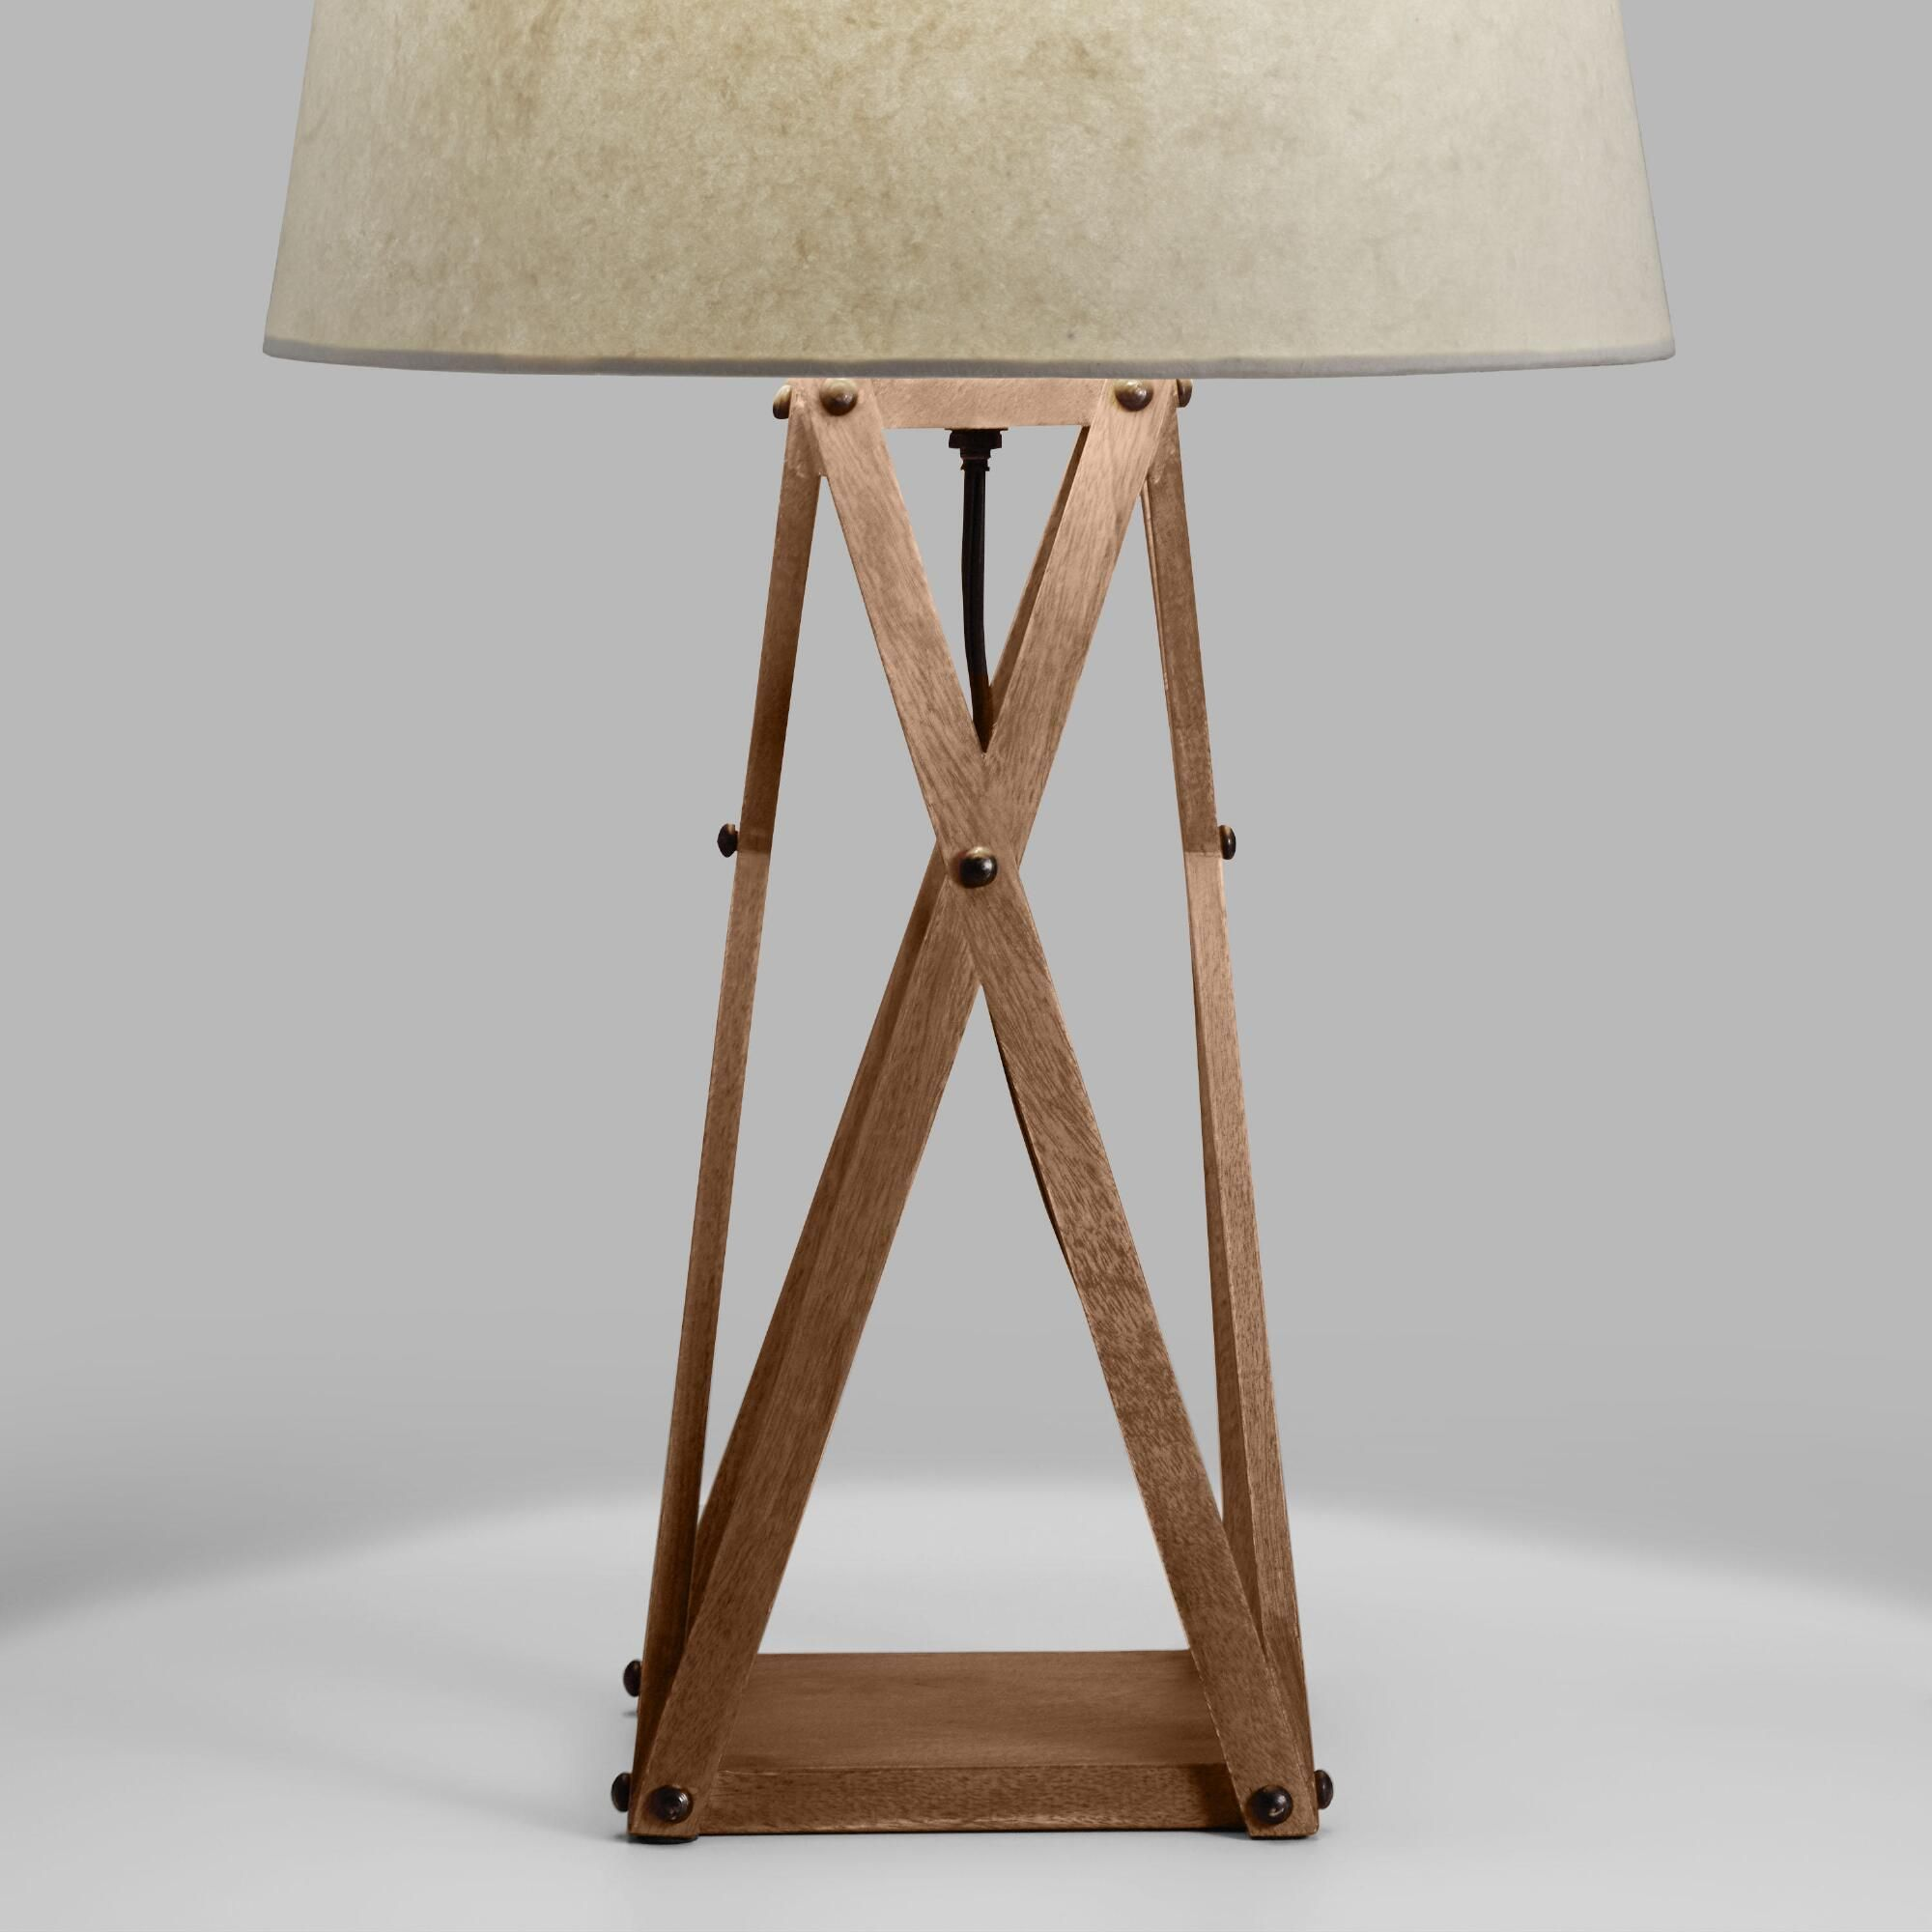 Wooden lamps that combine basic